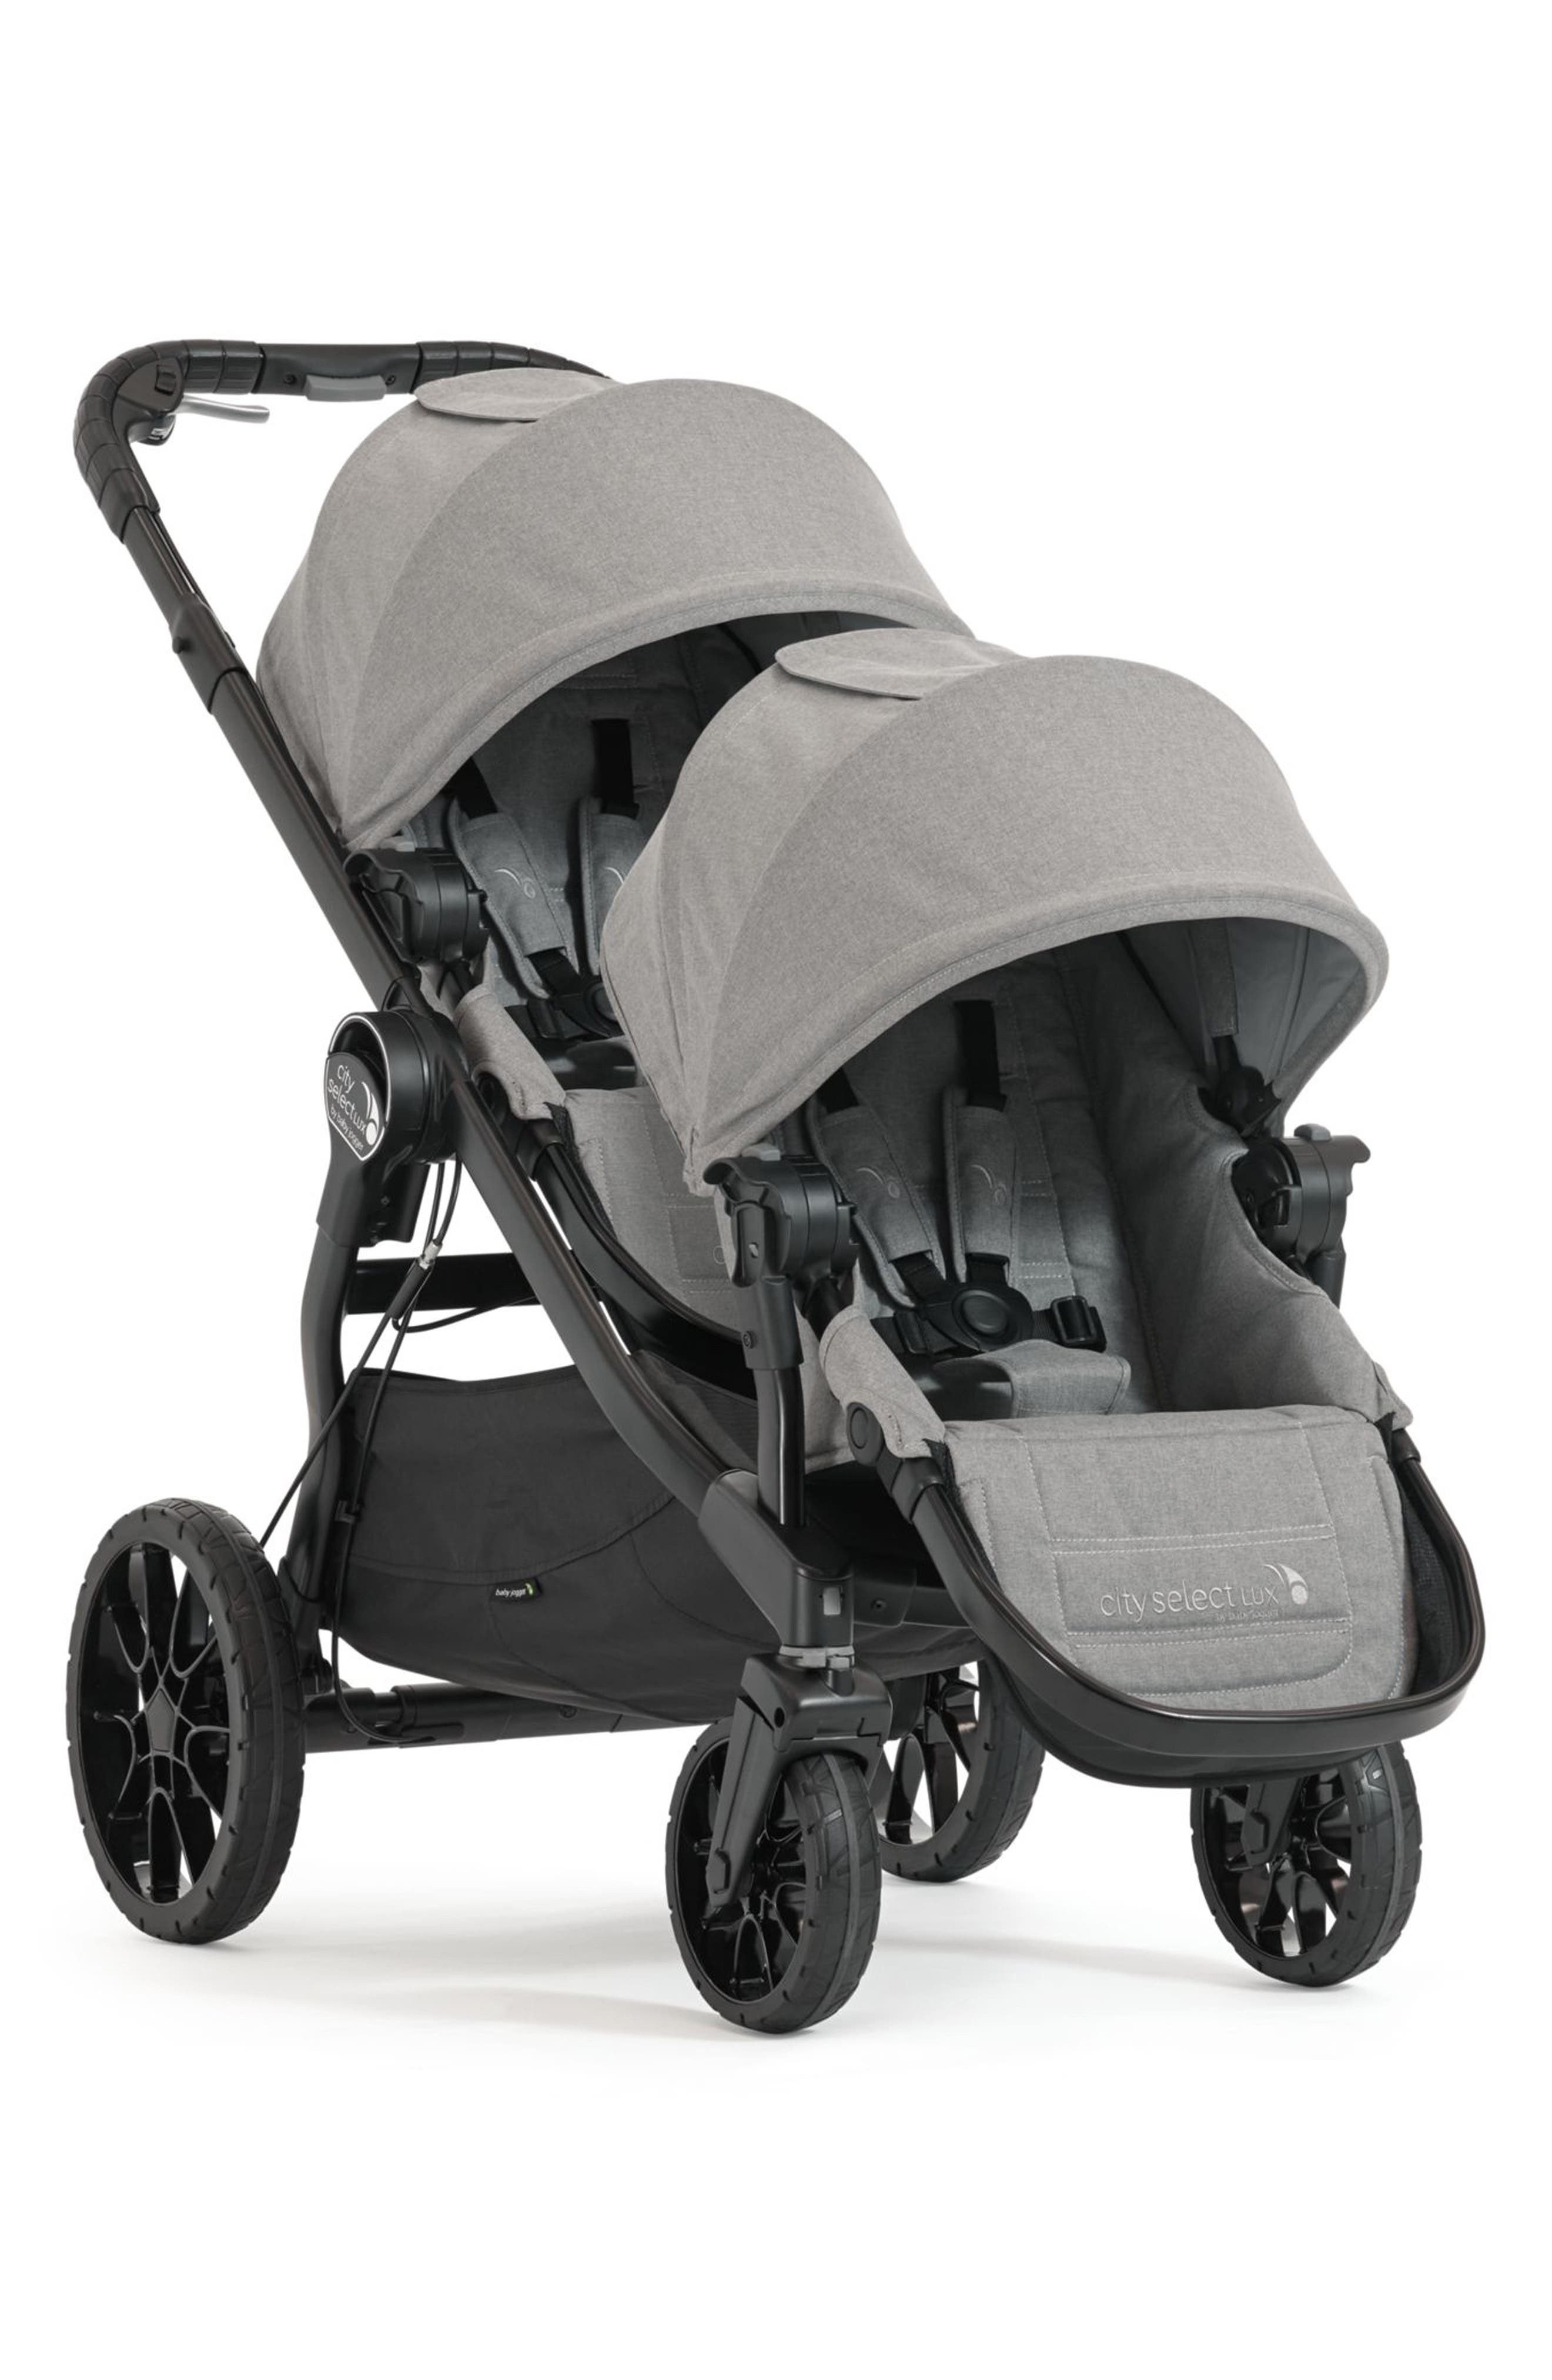 Baby Jogger Second Seat for City Select LUX Stroller